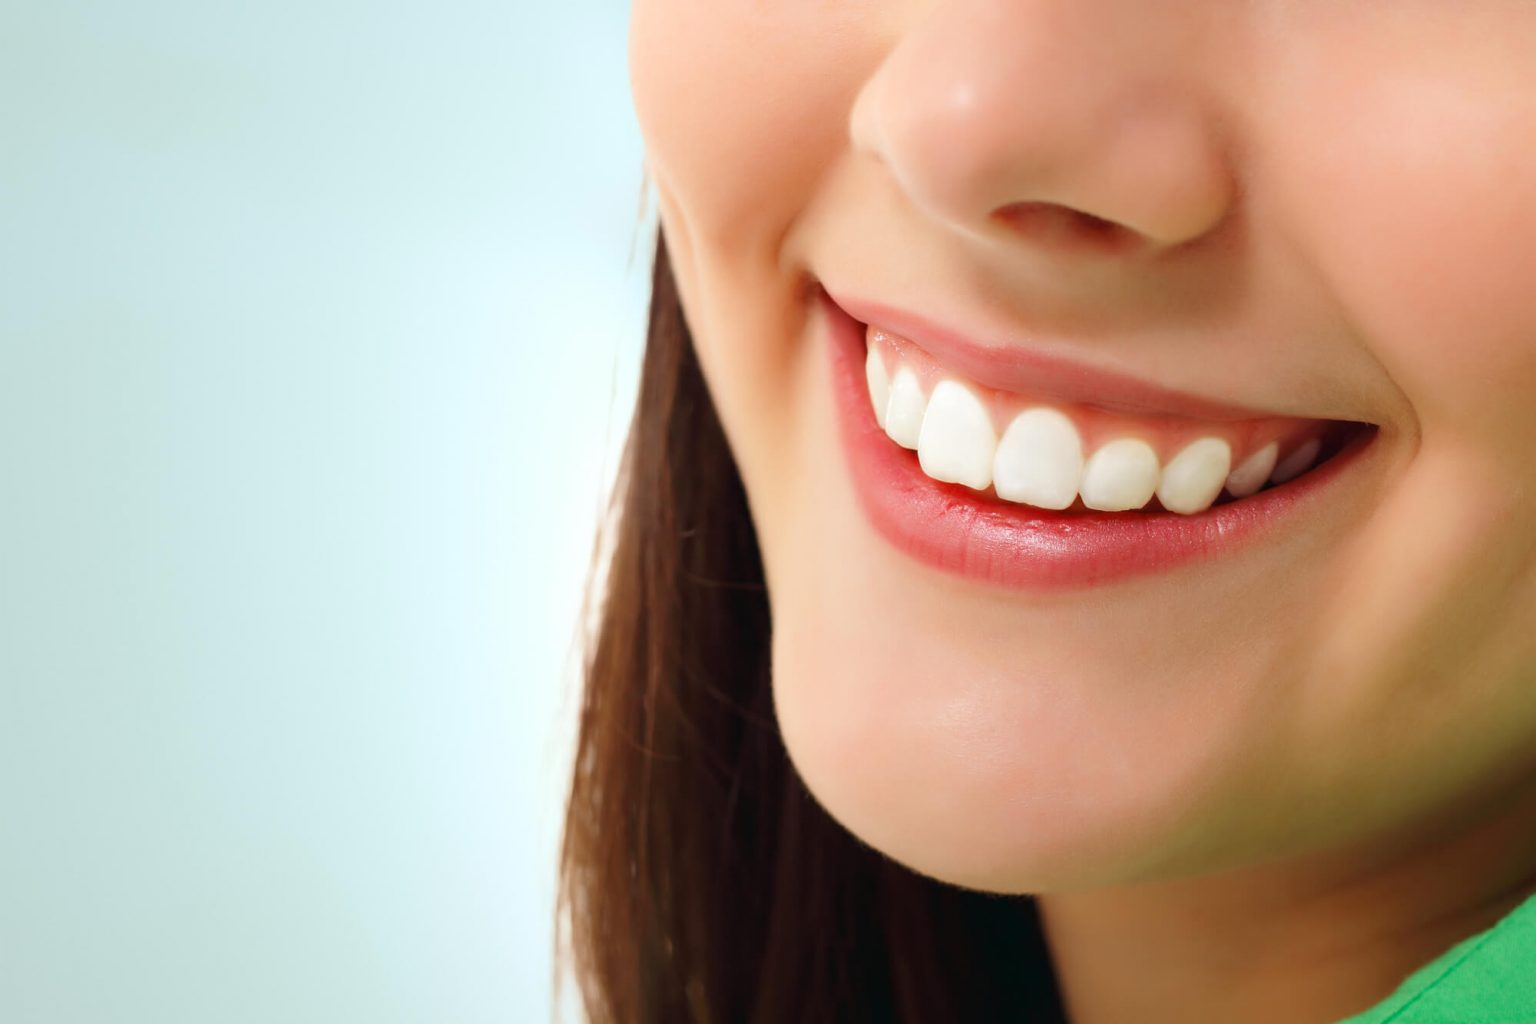 where can i get dental implants in oak park?